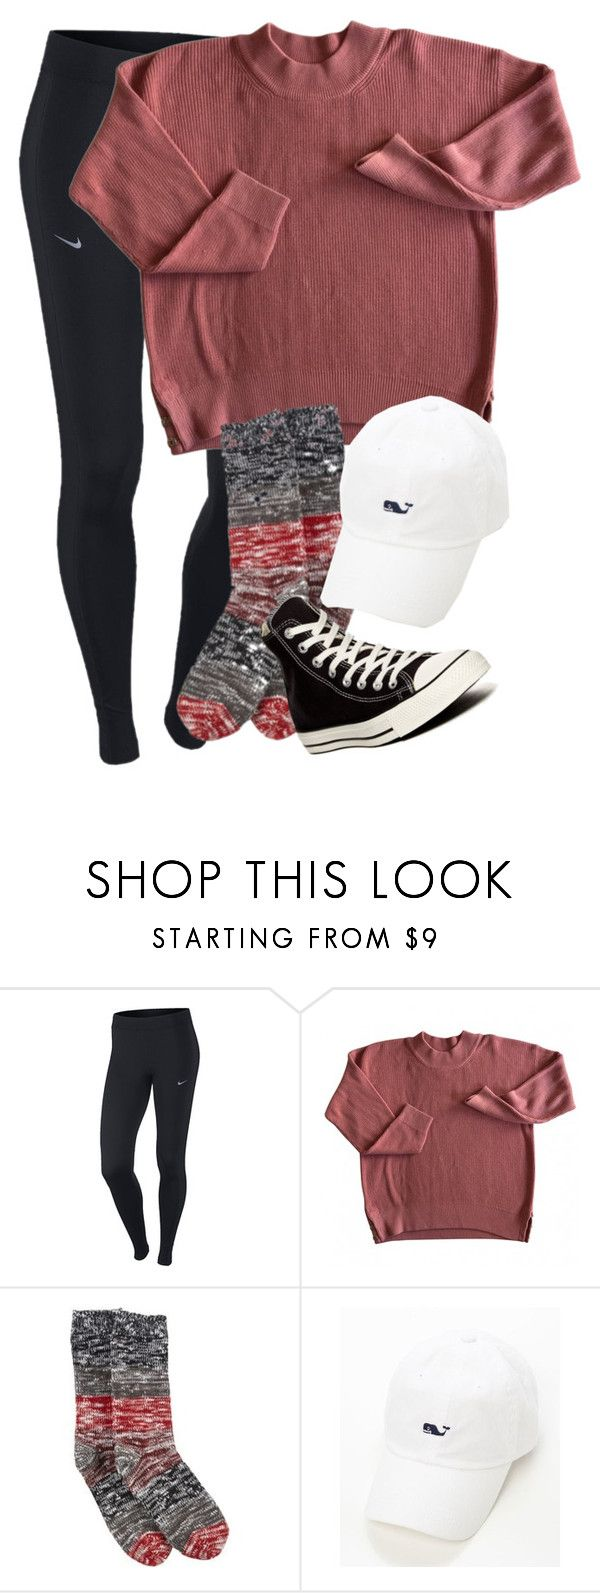 """""""IM MAY BE GETTIN A POLAROID CAMERA SOON. COMMENT WHAT COLOR I SHOULD GET IM THINKING LIGHT PINK"""" by elizabethannee ❤ liked on Polyvore featuring NIKE, Hue, Converse, women's clothing, women's fashion, women, female, woman, misses and juniors"""